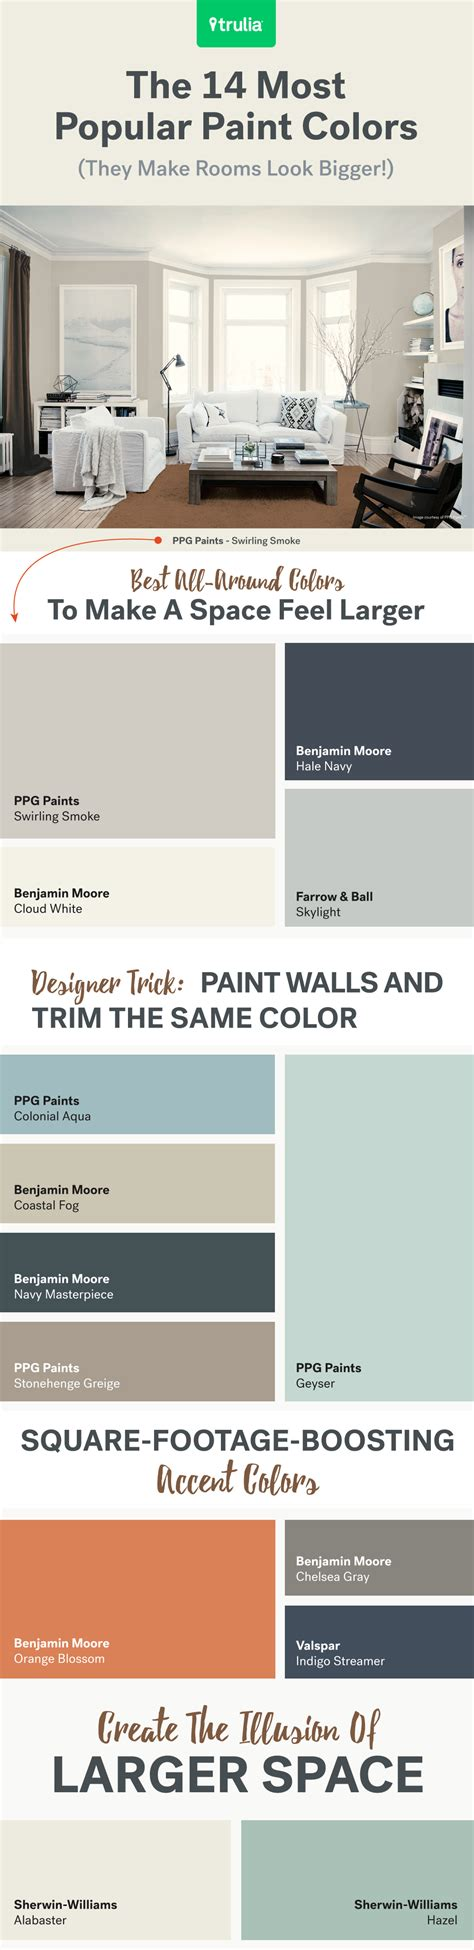 most popular paint colors 14 popular paint colors for small rooms life at home